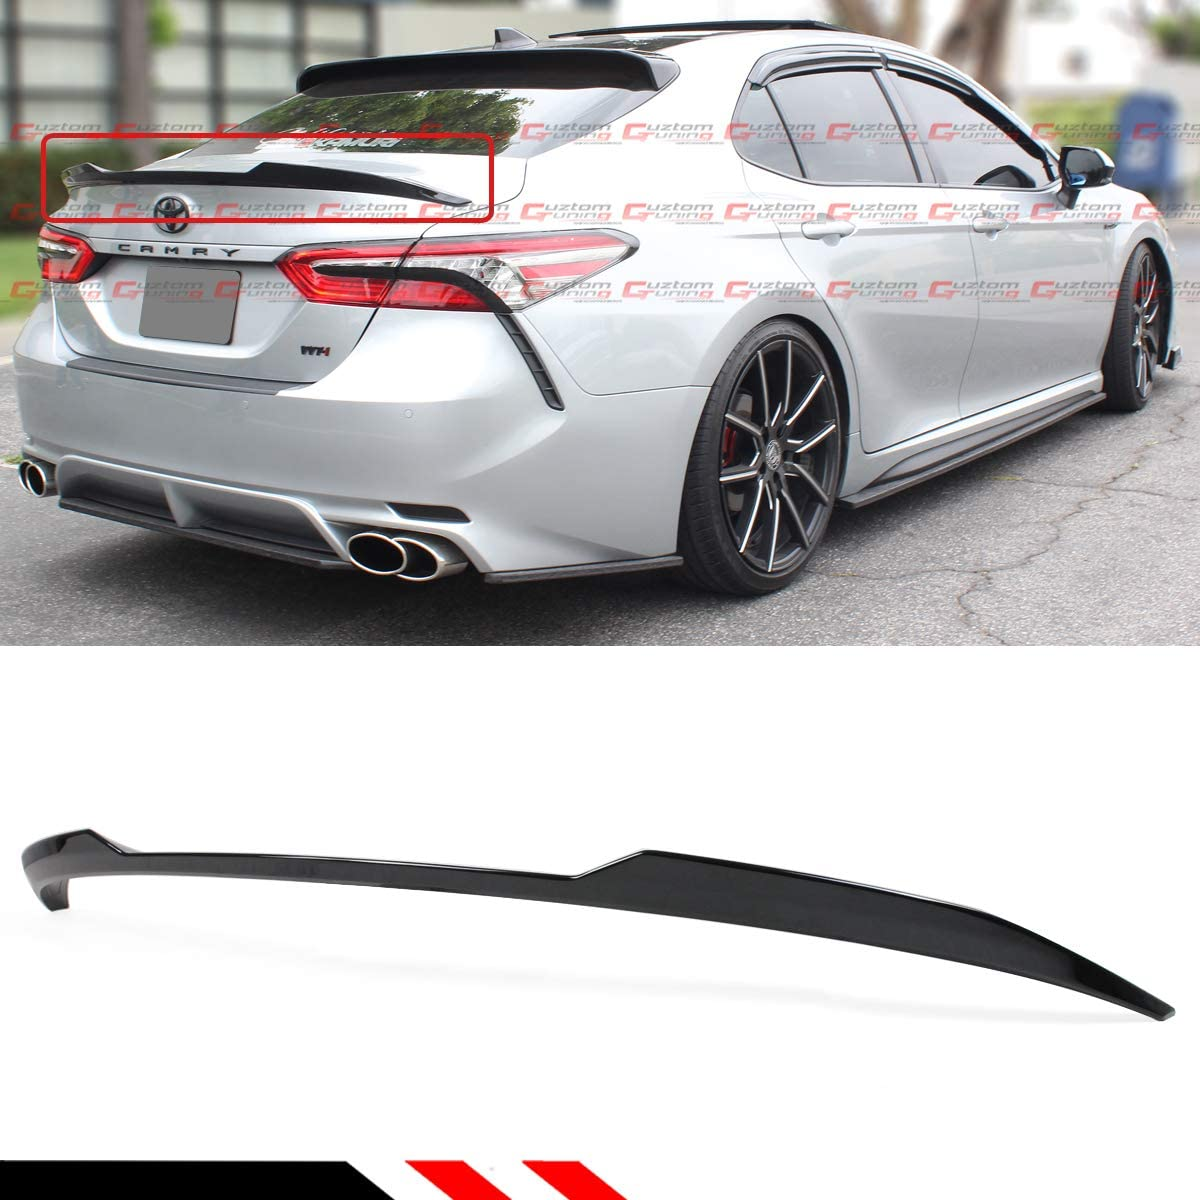 Painted Gloss White Finish Cuztom Tuning Fits for 2018-2020 Toyota Camry LE XLE Hybrid V Style Rear Trunk Lid Spoiler Wing